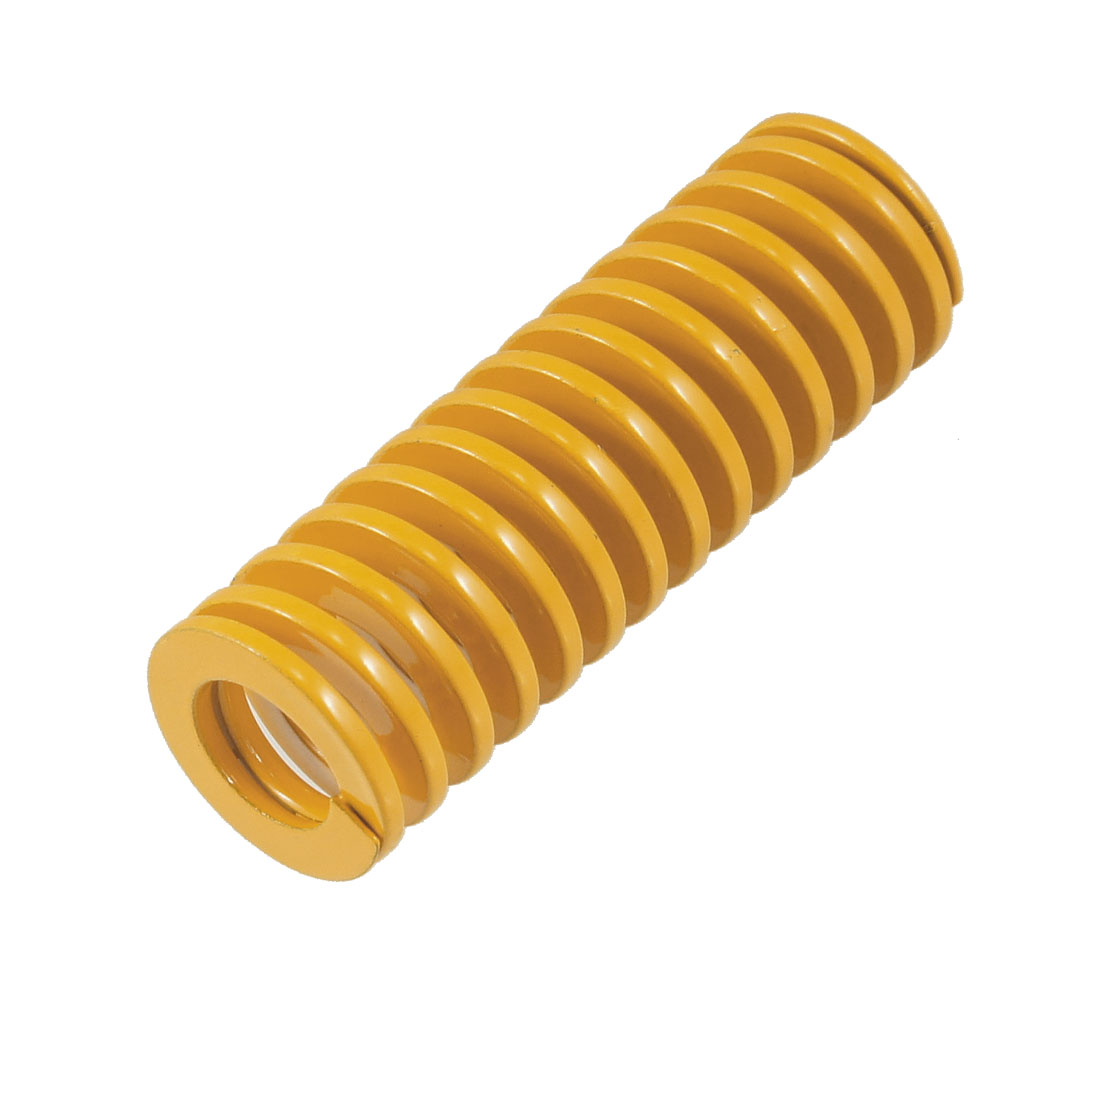 30mm x 17mm x 90mm Spiral Metal Stamping Compression Die Spring